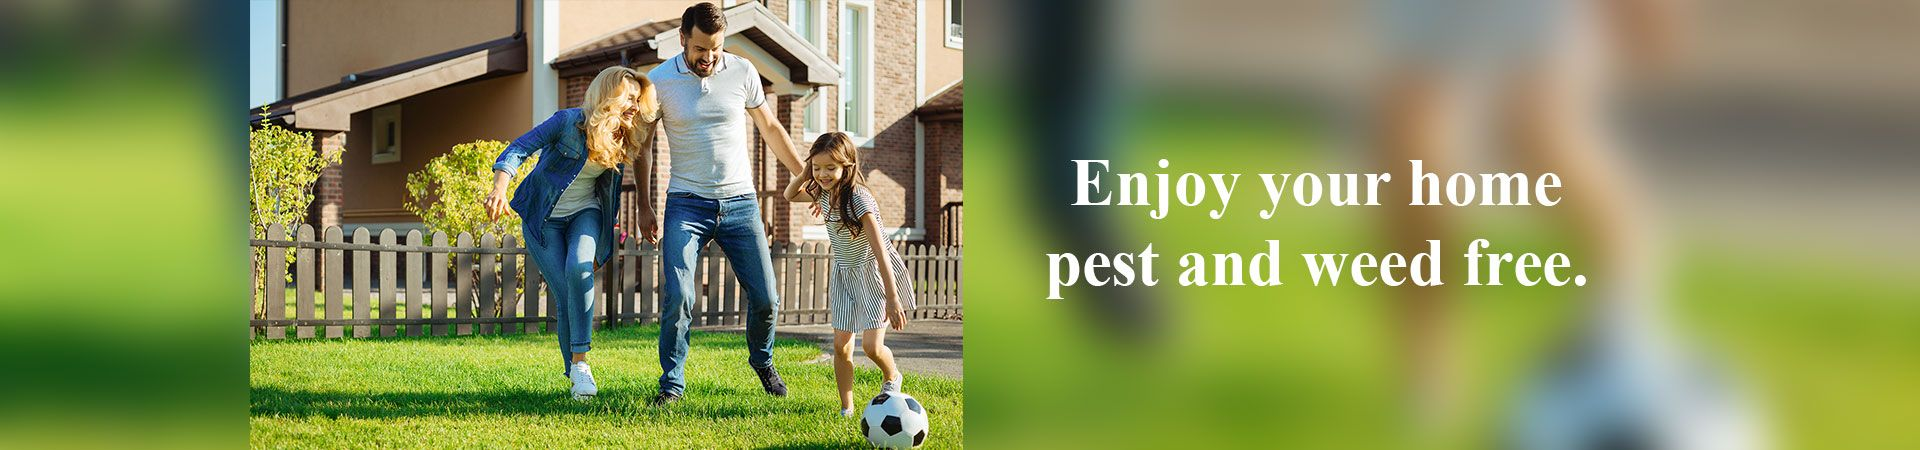 Enjoy your home pest and weed free